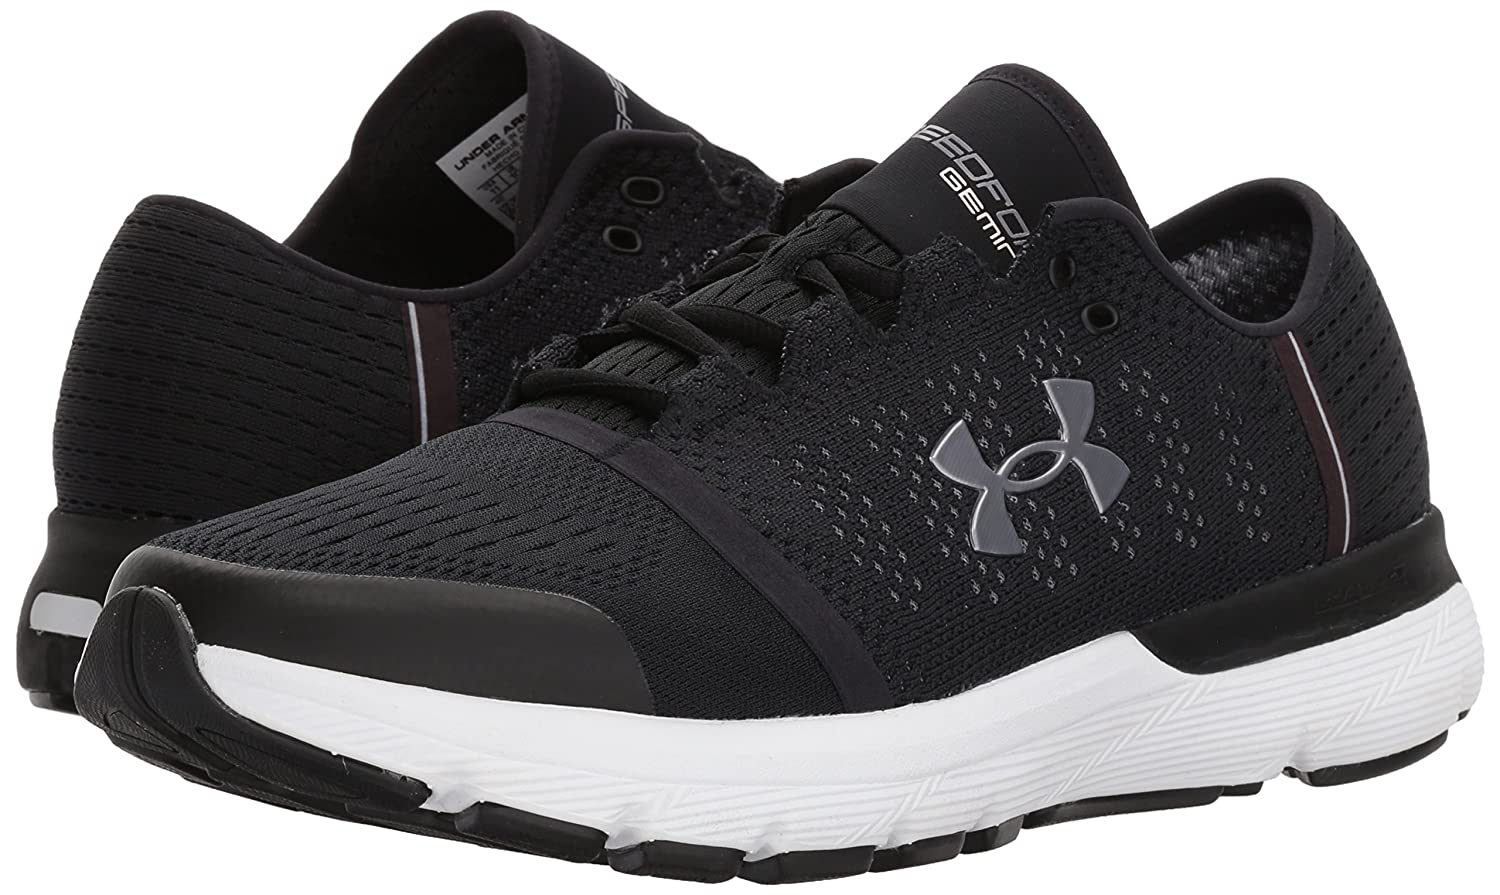 meet b2585 a9985 Under Armour Men's Speedform Gemini Vent-4E Running Shoe